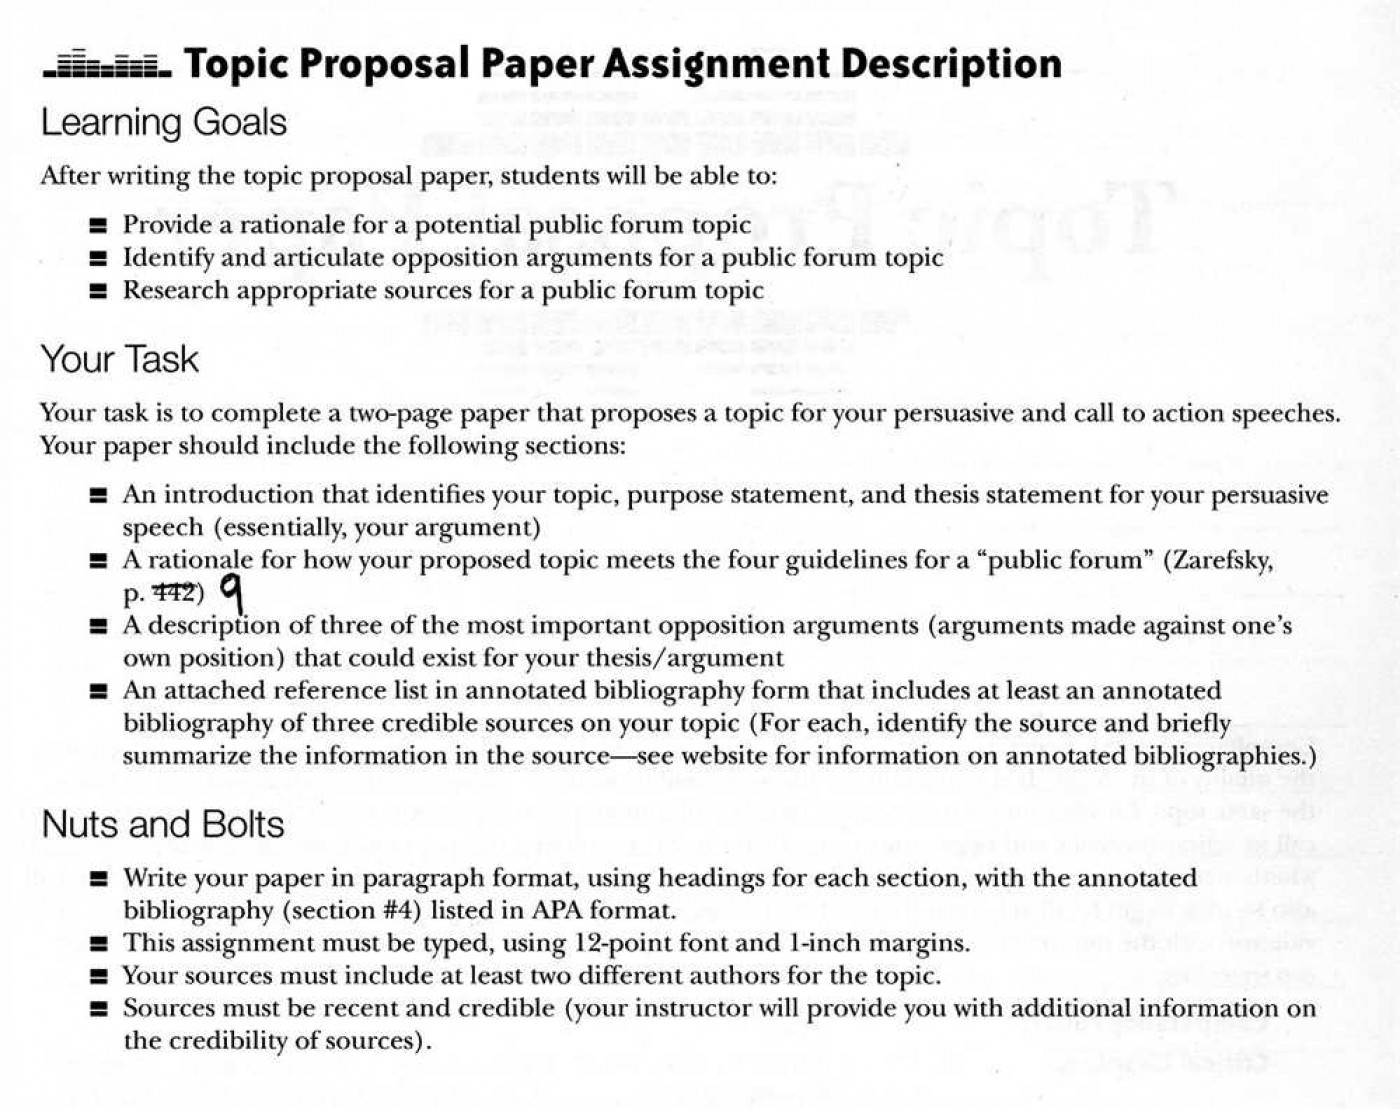 010 Ecology Research 8841976 Topics For Arguments Best Argument Papers Medical Argumentative Paper Controversial 1400